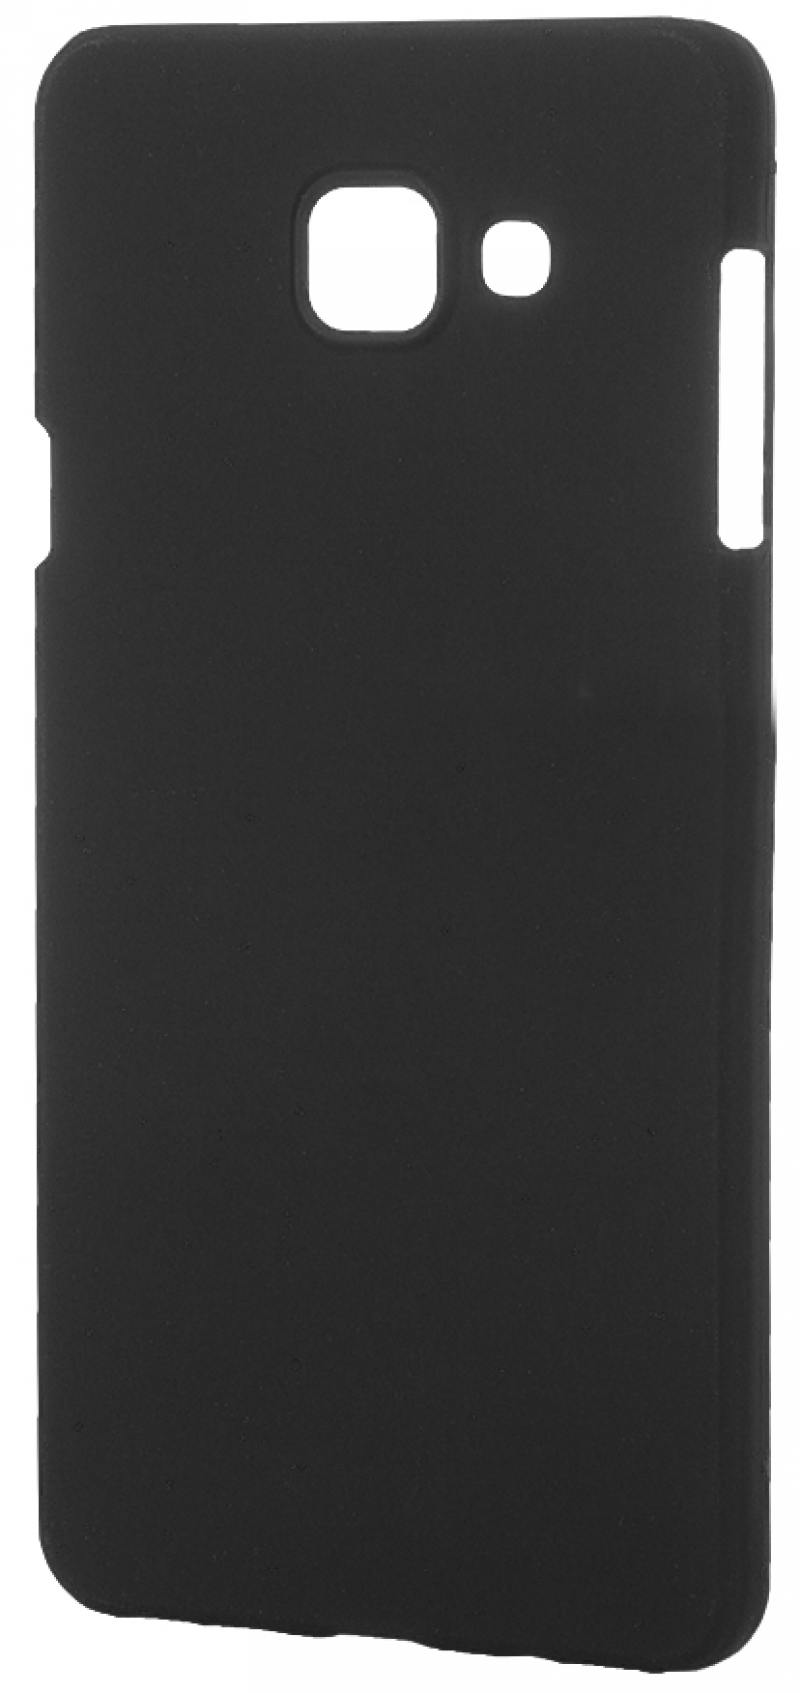 Чехол-накладка для Samsung Galaxy A7 2016 Pulsar CLIPCASE PC Soft-Touch Black клип-кейс, пластик чехол клип кейс lazarr soft touch для samsung galaxy s4 i 9500 пластик белый